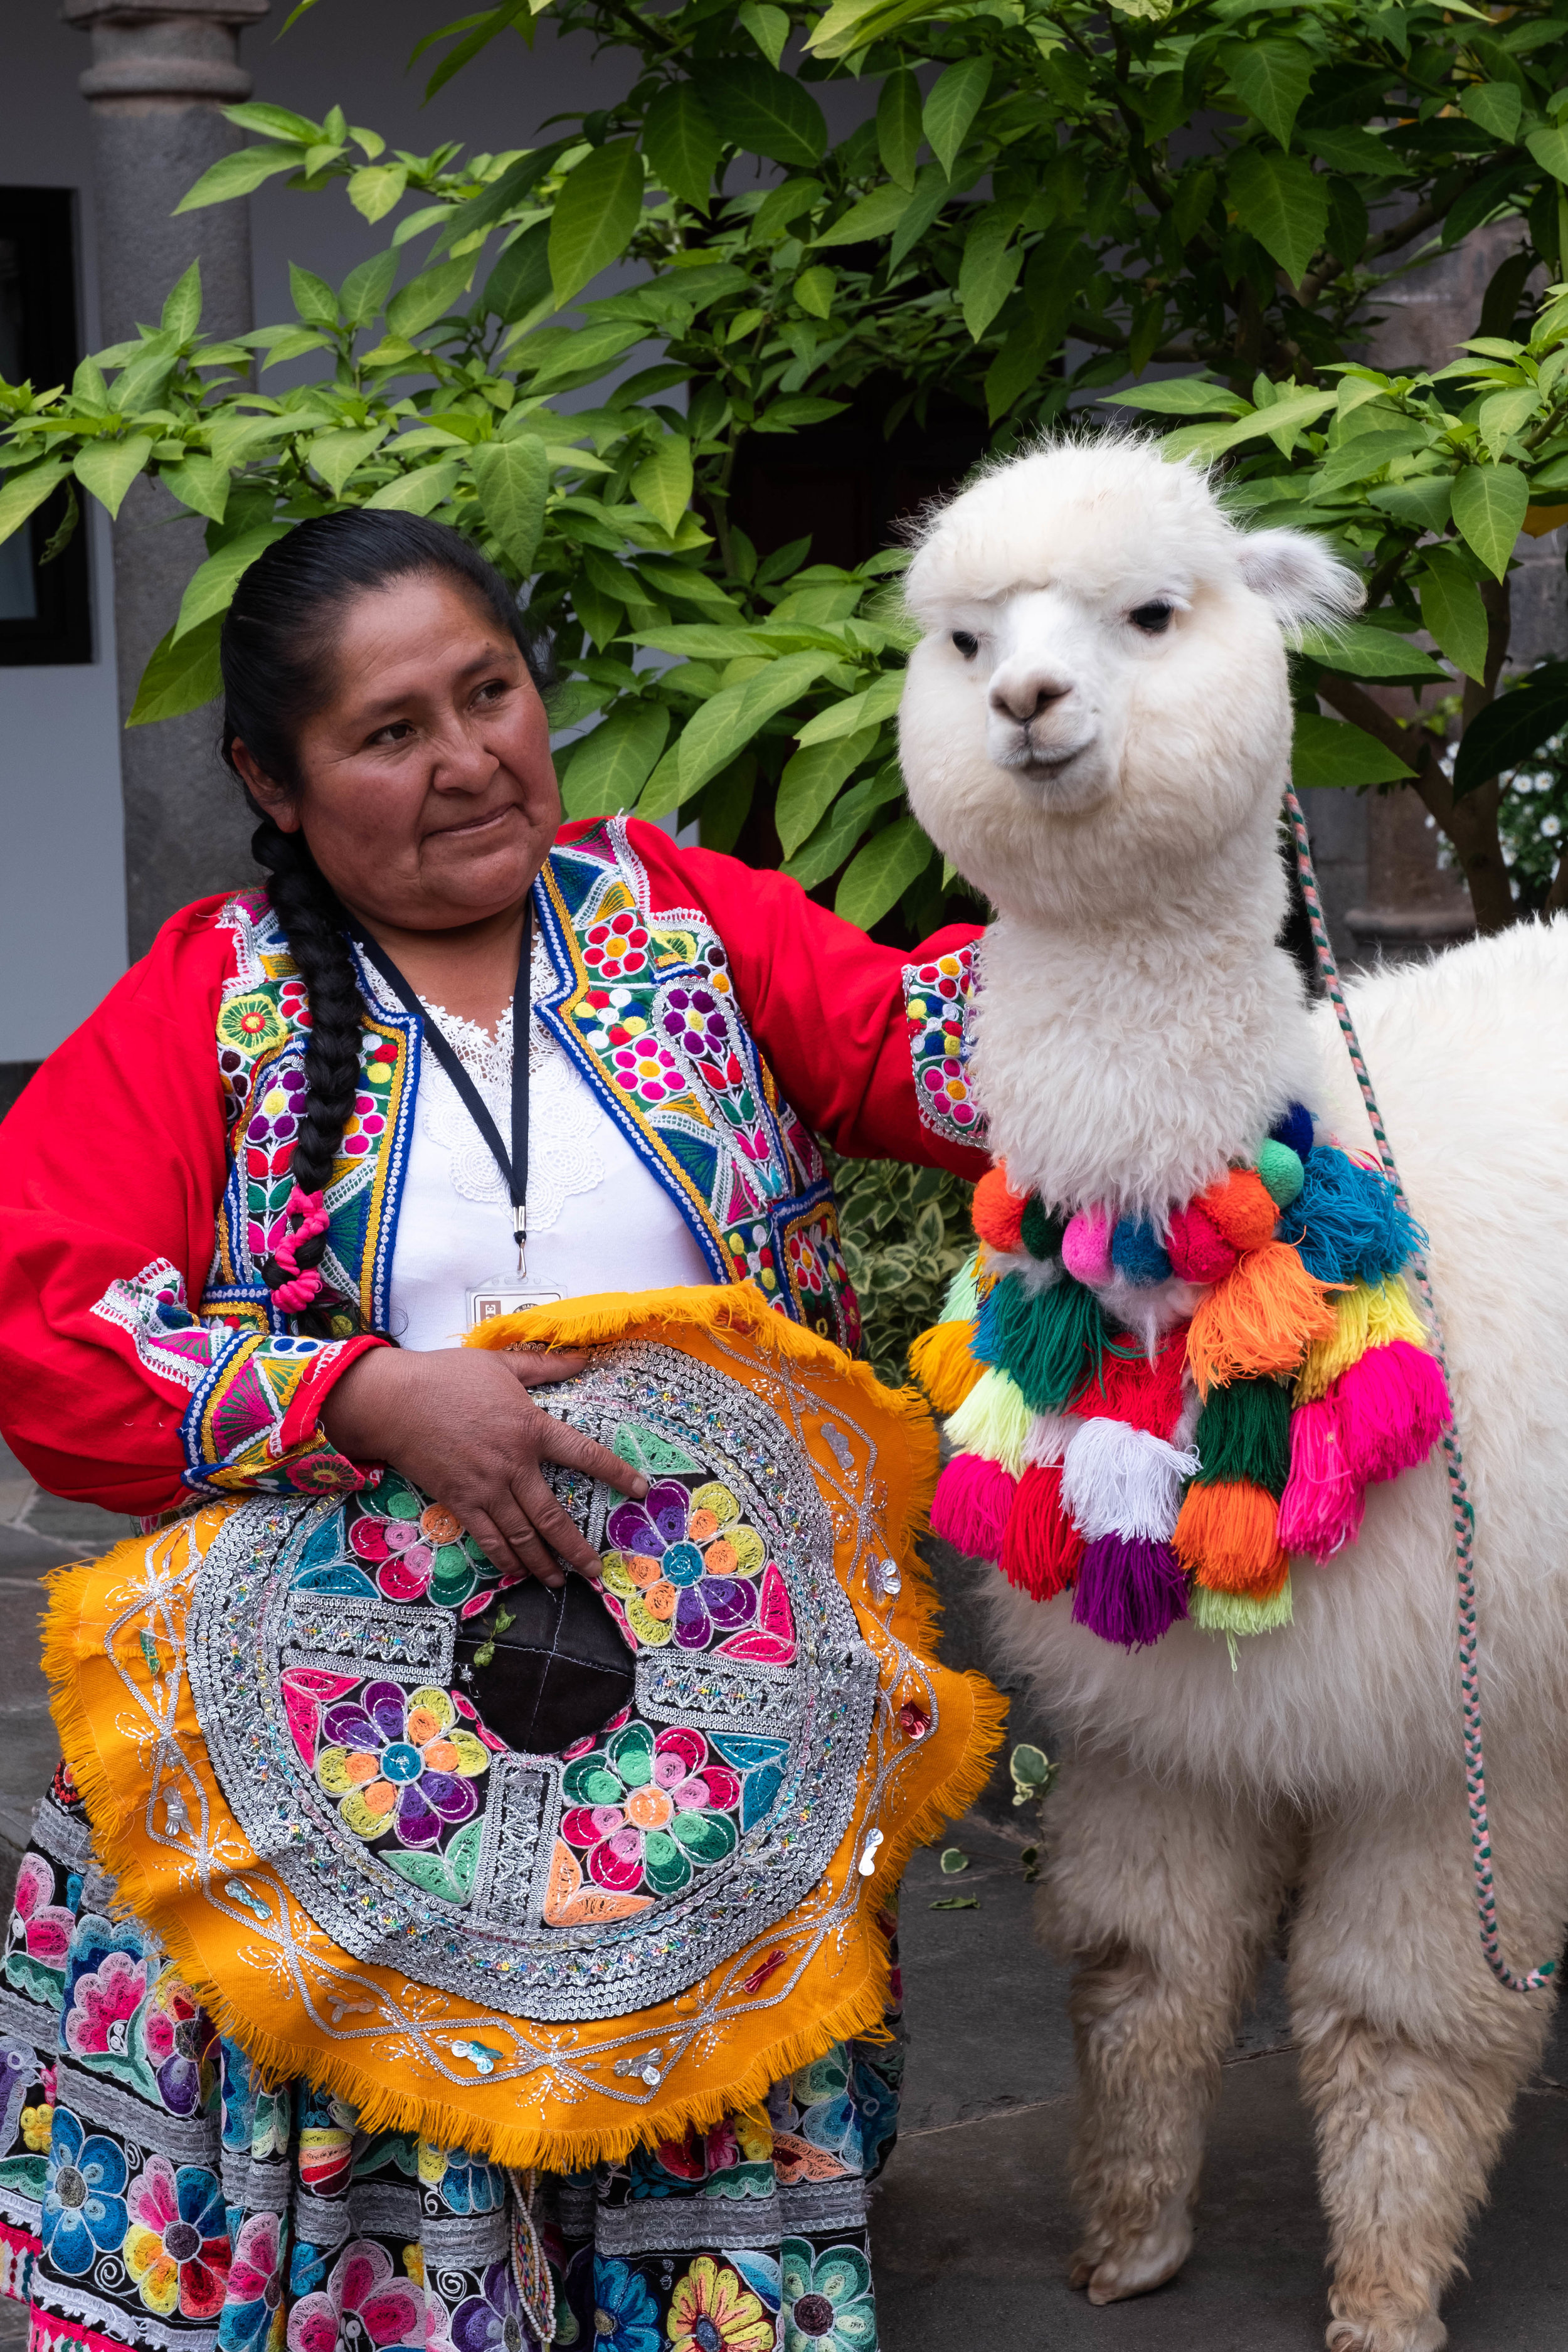 The hotel offers the chinchero experience right in the hotel's courtyard. Here a local maker is with a friendly alpaca named Panchita.